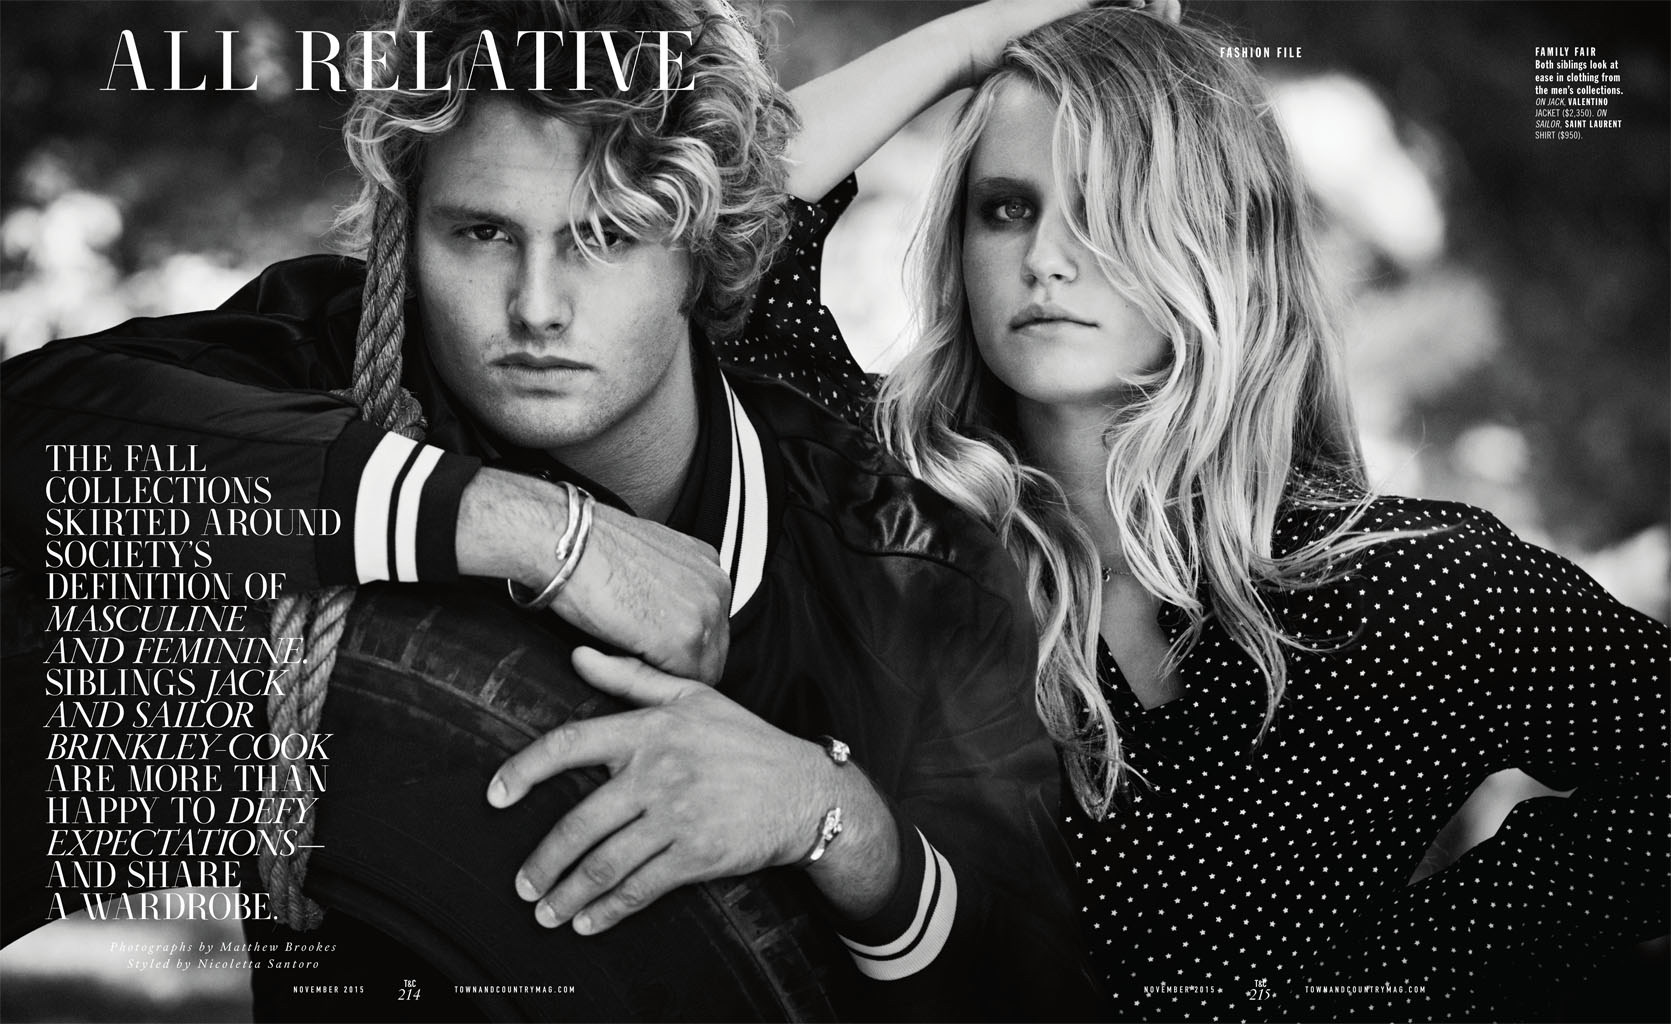 Christie Brinkley's Children Model in Town & Country Fashion Editorial